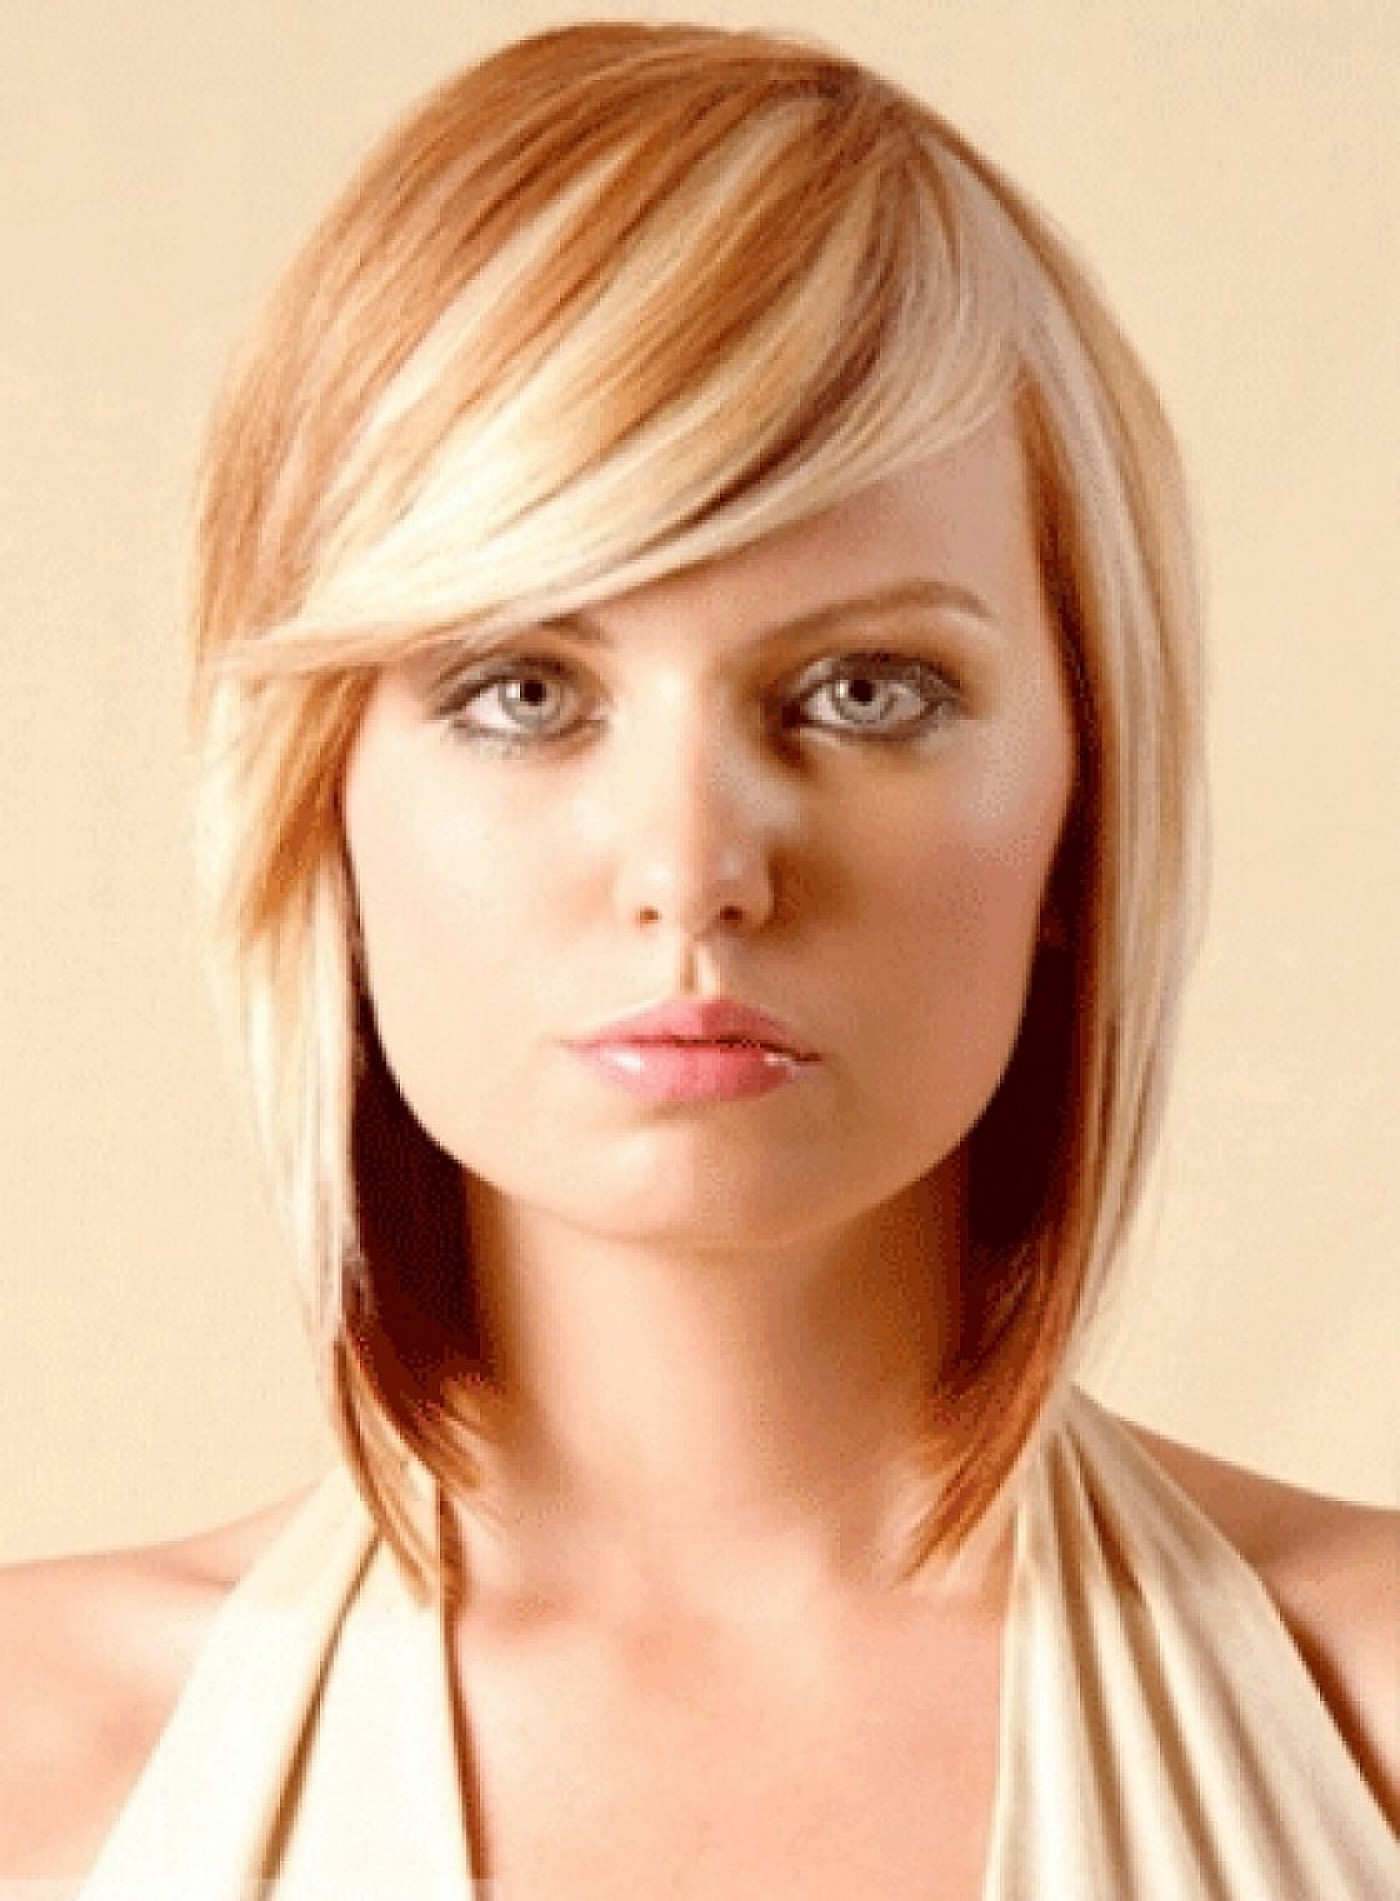 007 Hairstyle Ideas New Style Shoulder Length Hairstyles With Bangs Throughout Most Popular Side Swept Medium Hairstyles (View 11 of 20)